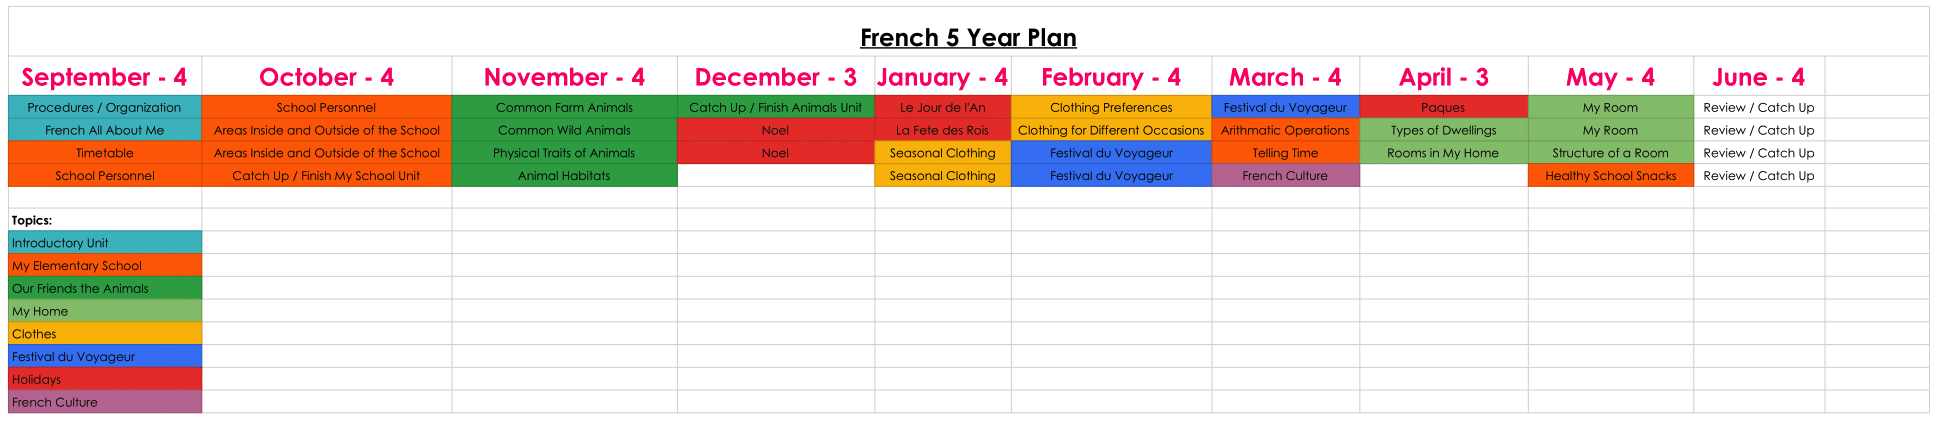 alberta fsl 5 year plan for french as a second language